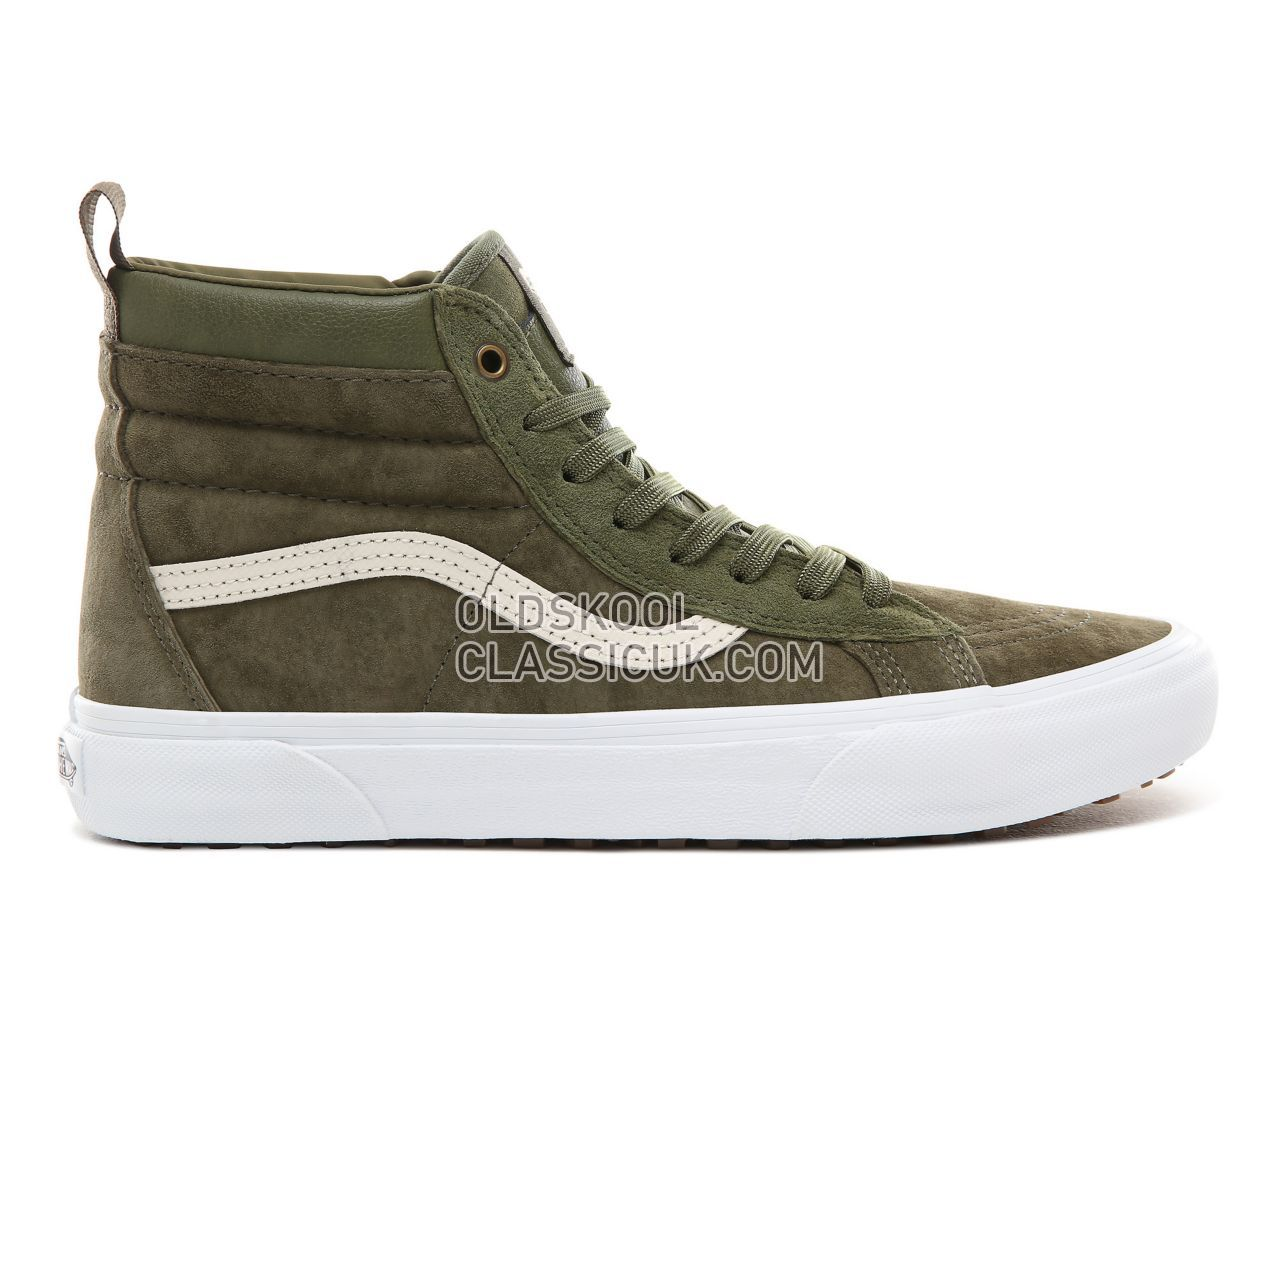 Vans Sk8-Hi MTE Sneakers Mens (Mte) Winter Moss/Military/True White VA33TXRJ5 Shoes